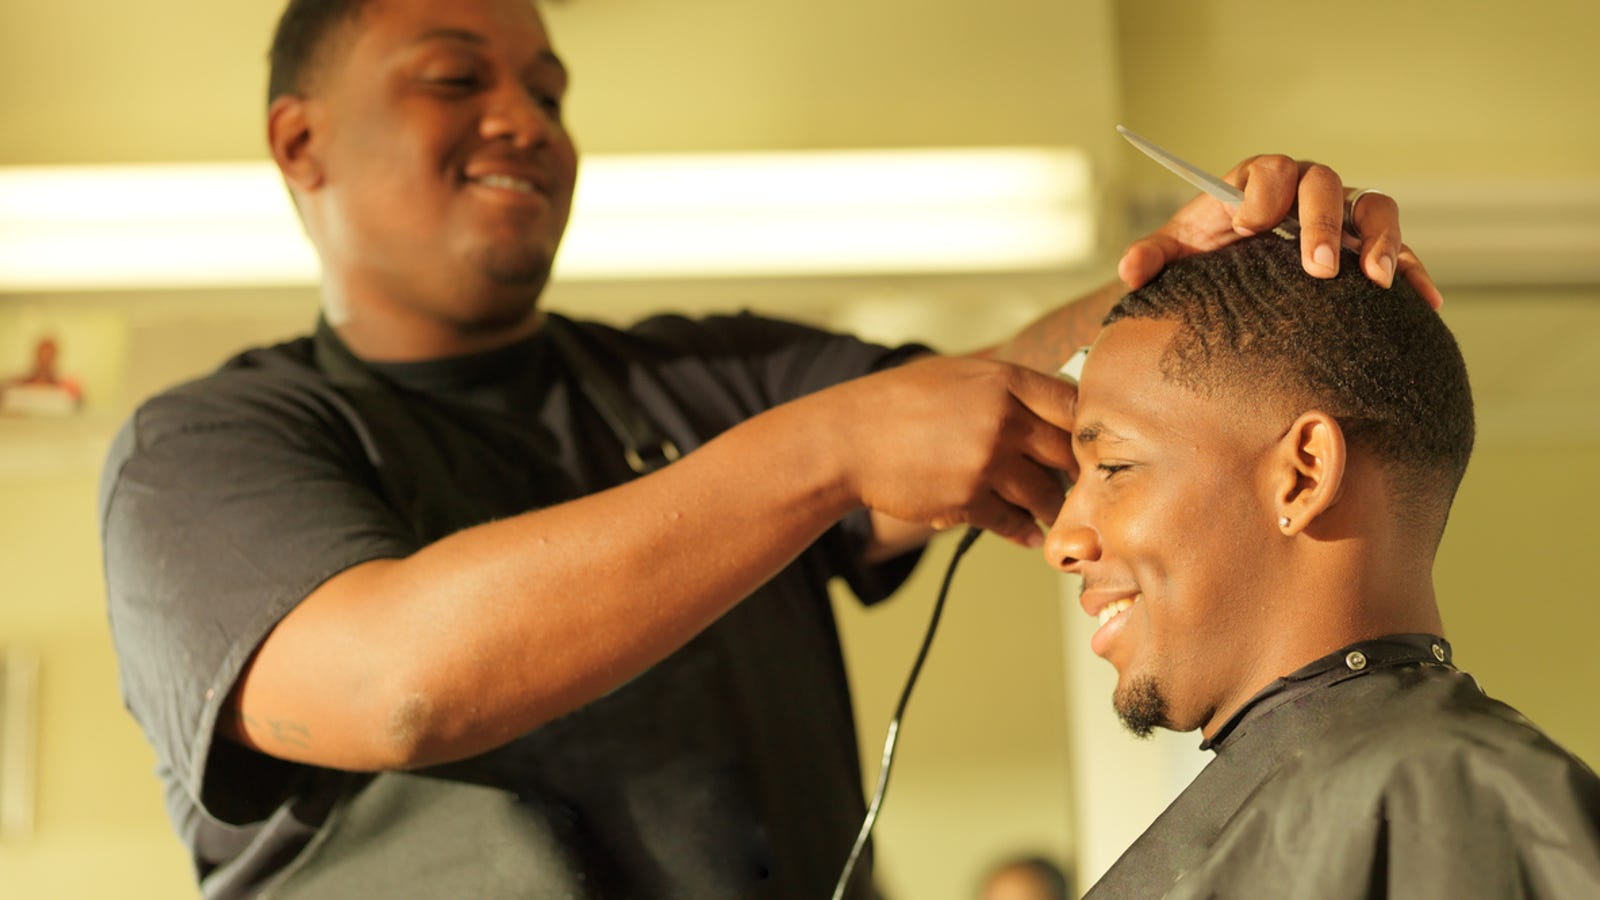 Hair Style U Cut: 10 Things You Need To Know About The Black Barbershop